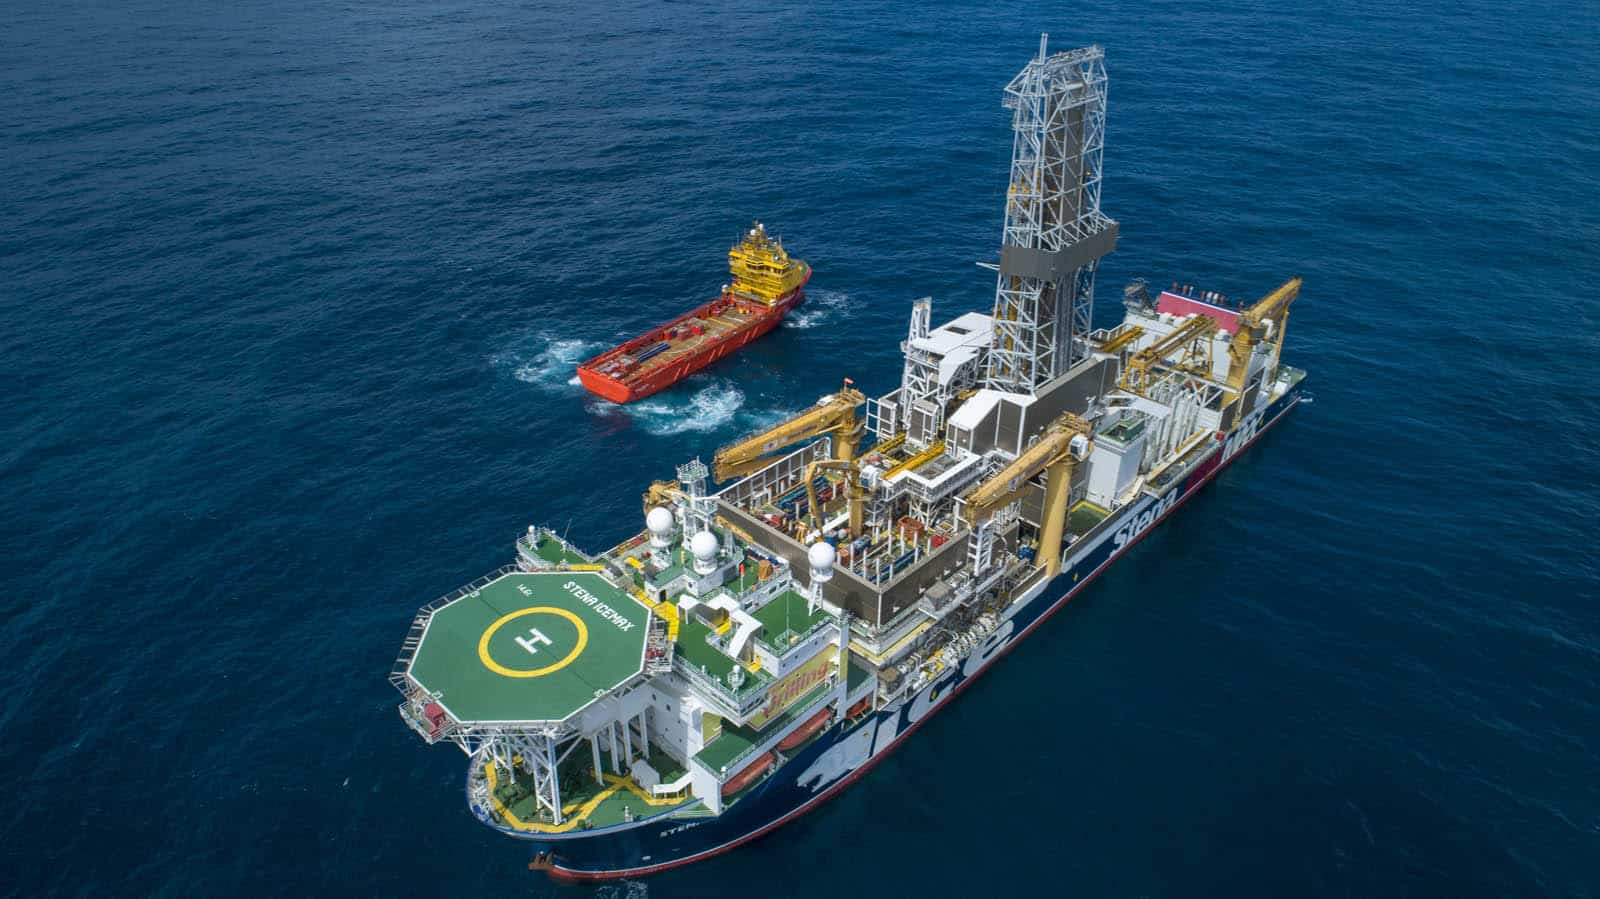 A drilling rig in the foreground with a smaller vessel behind